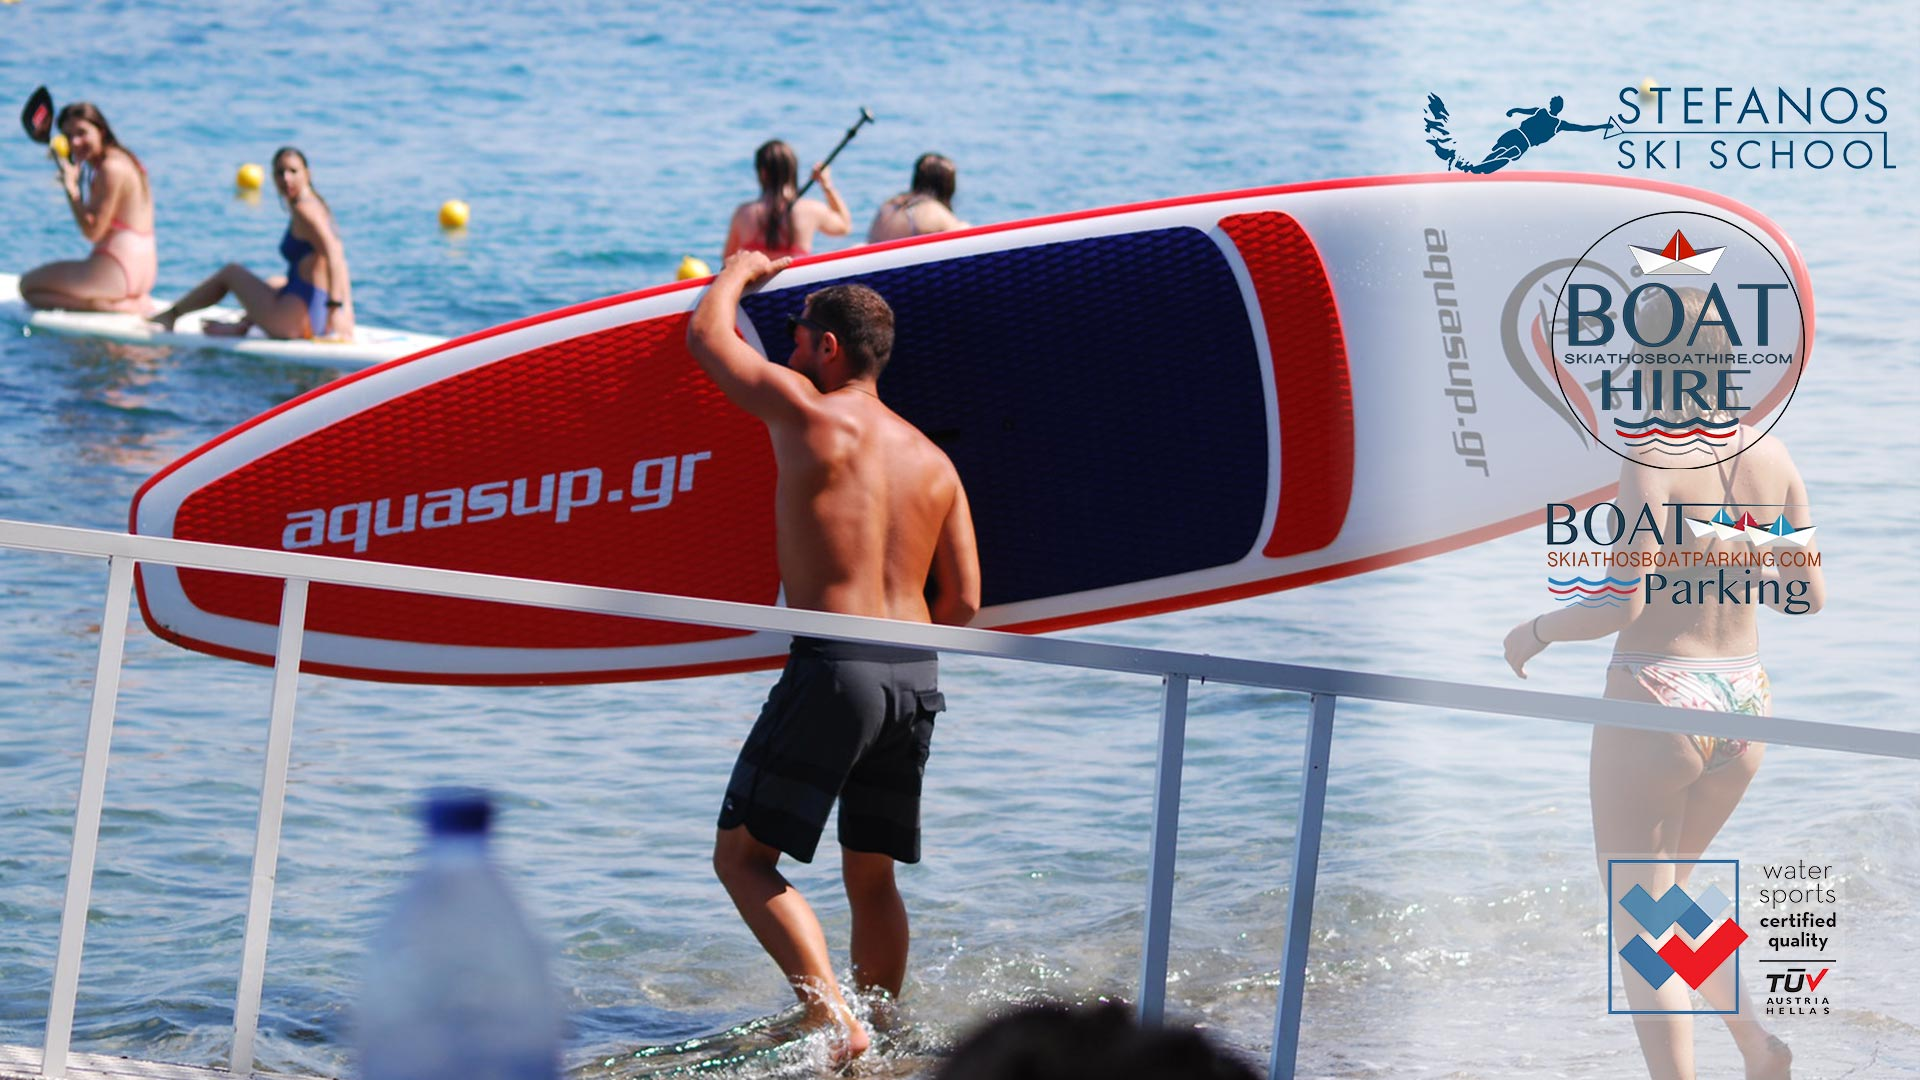 SUP Stand Up Paddle in Skiathos @stefanosskischool